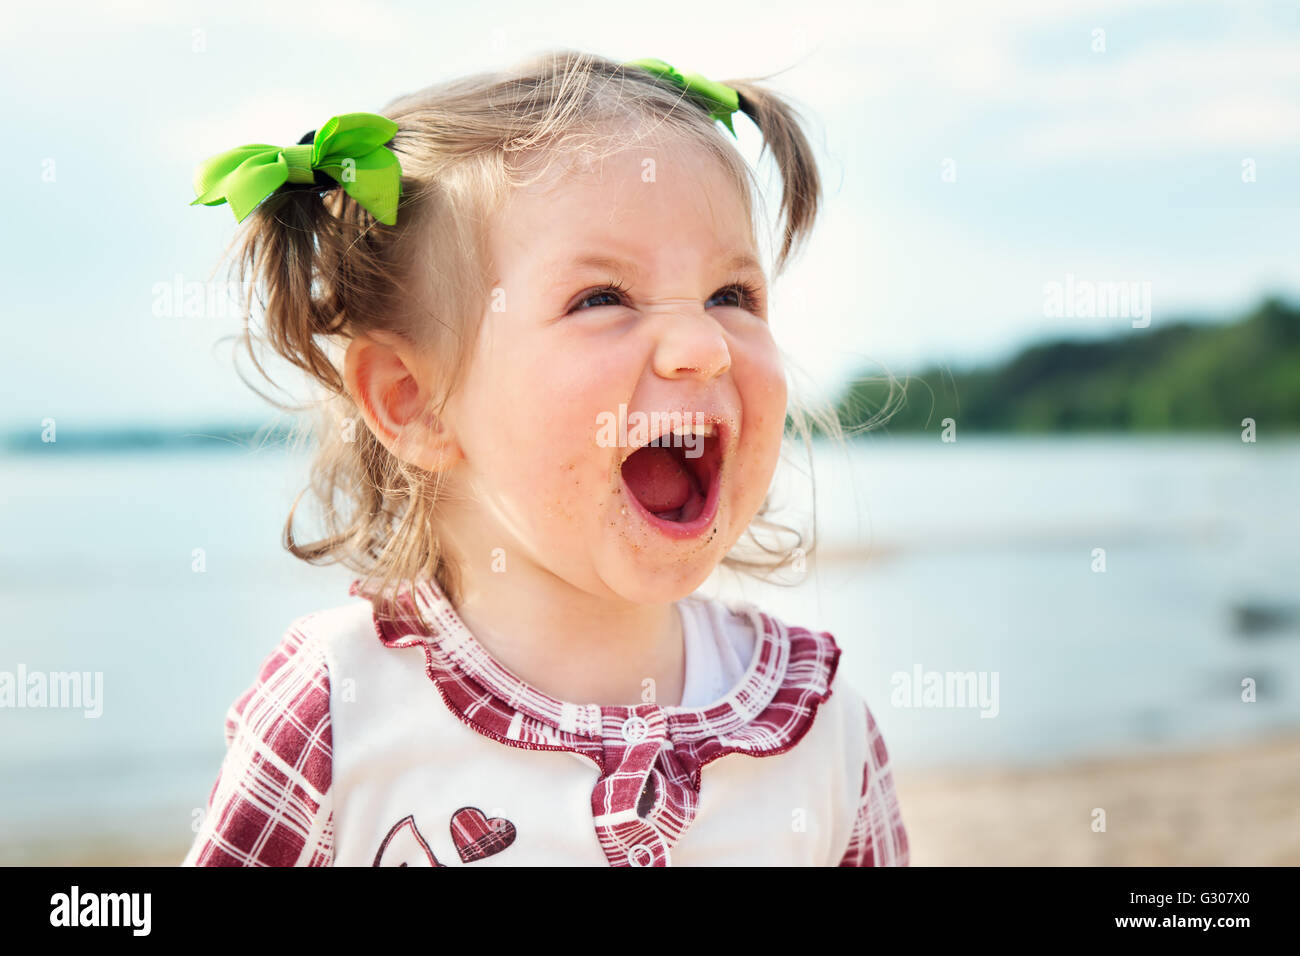 Funny little girl shouting at the sea - Stock Image